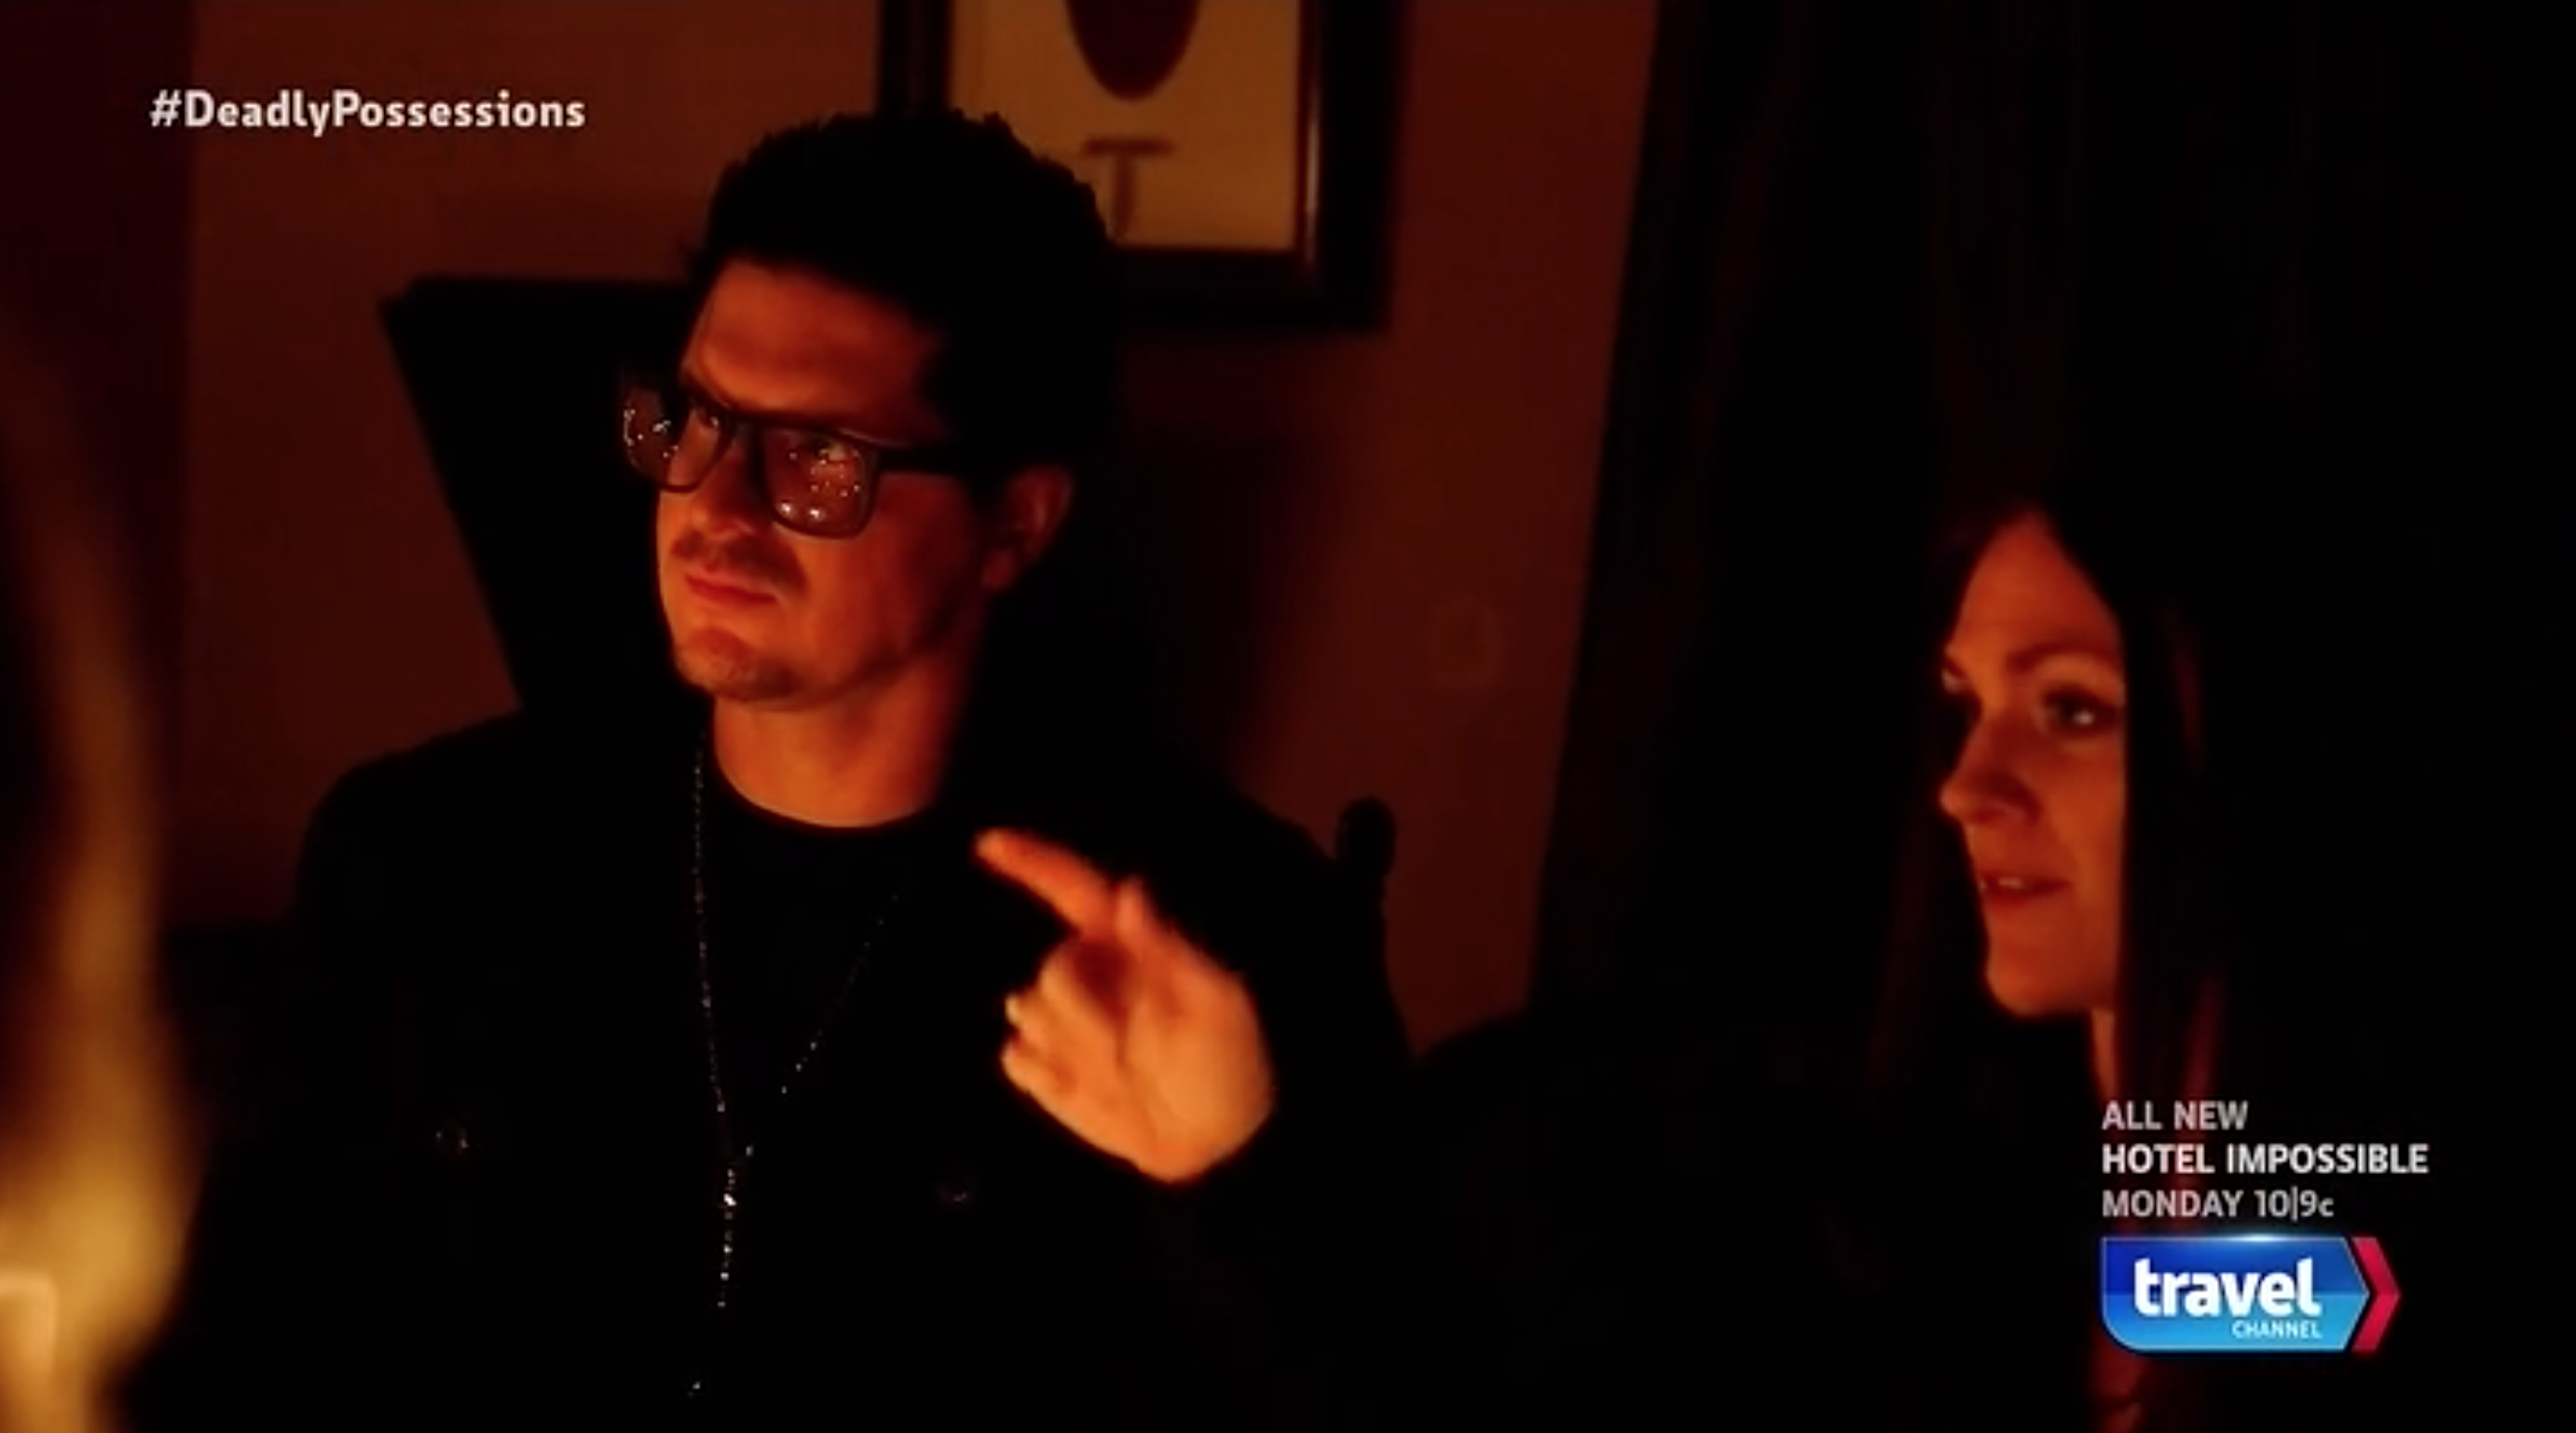 with Zak Bagans during filming